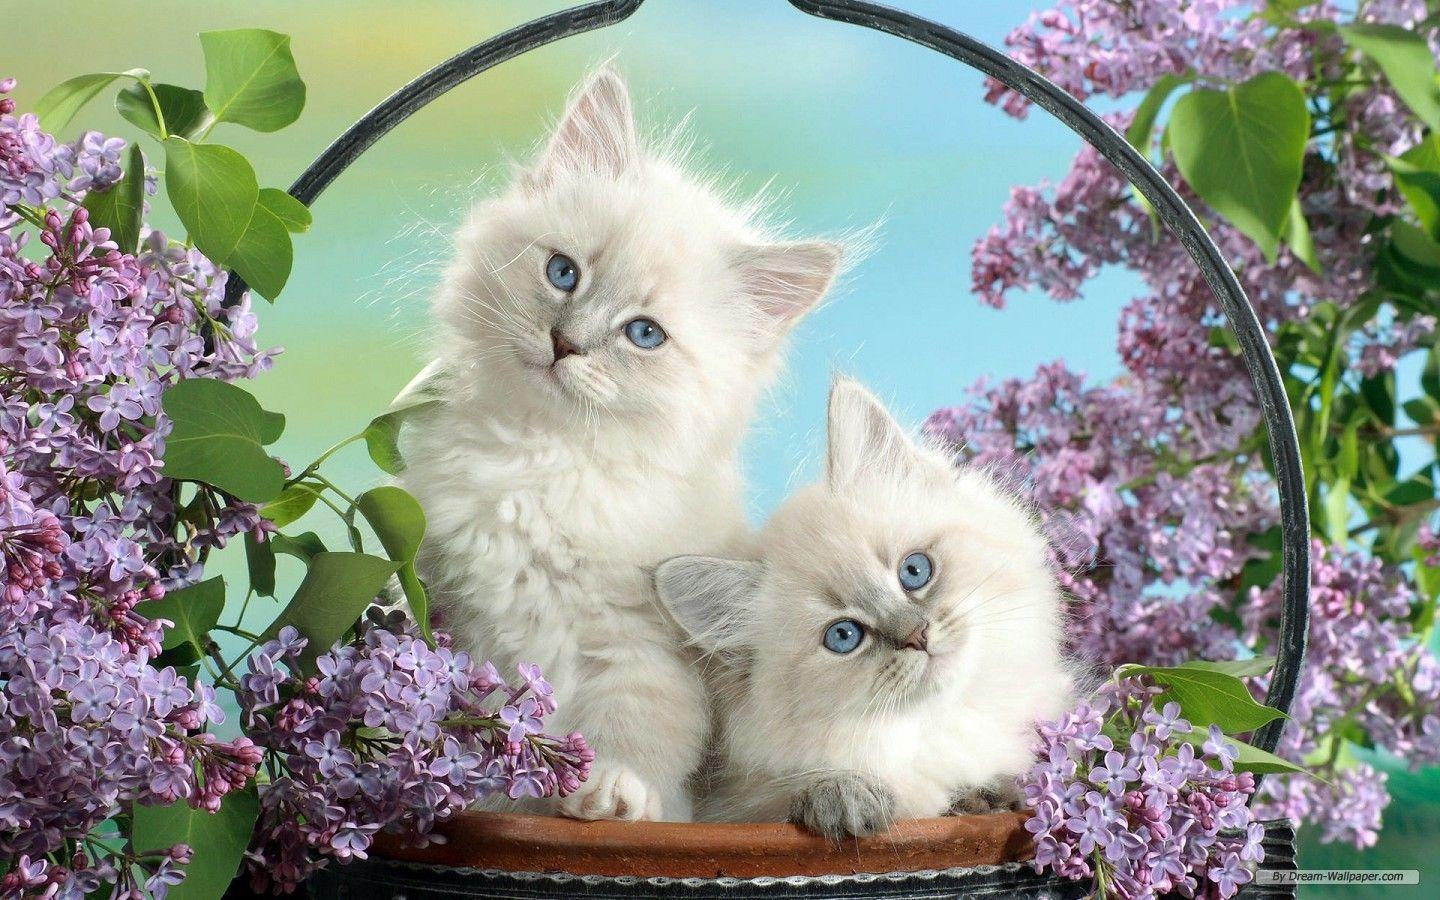 Animals free animal cute 380067 wallpapers online amazing